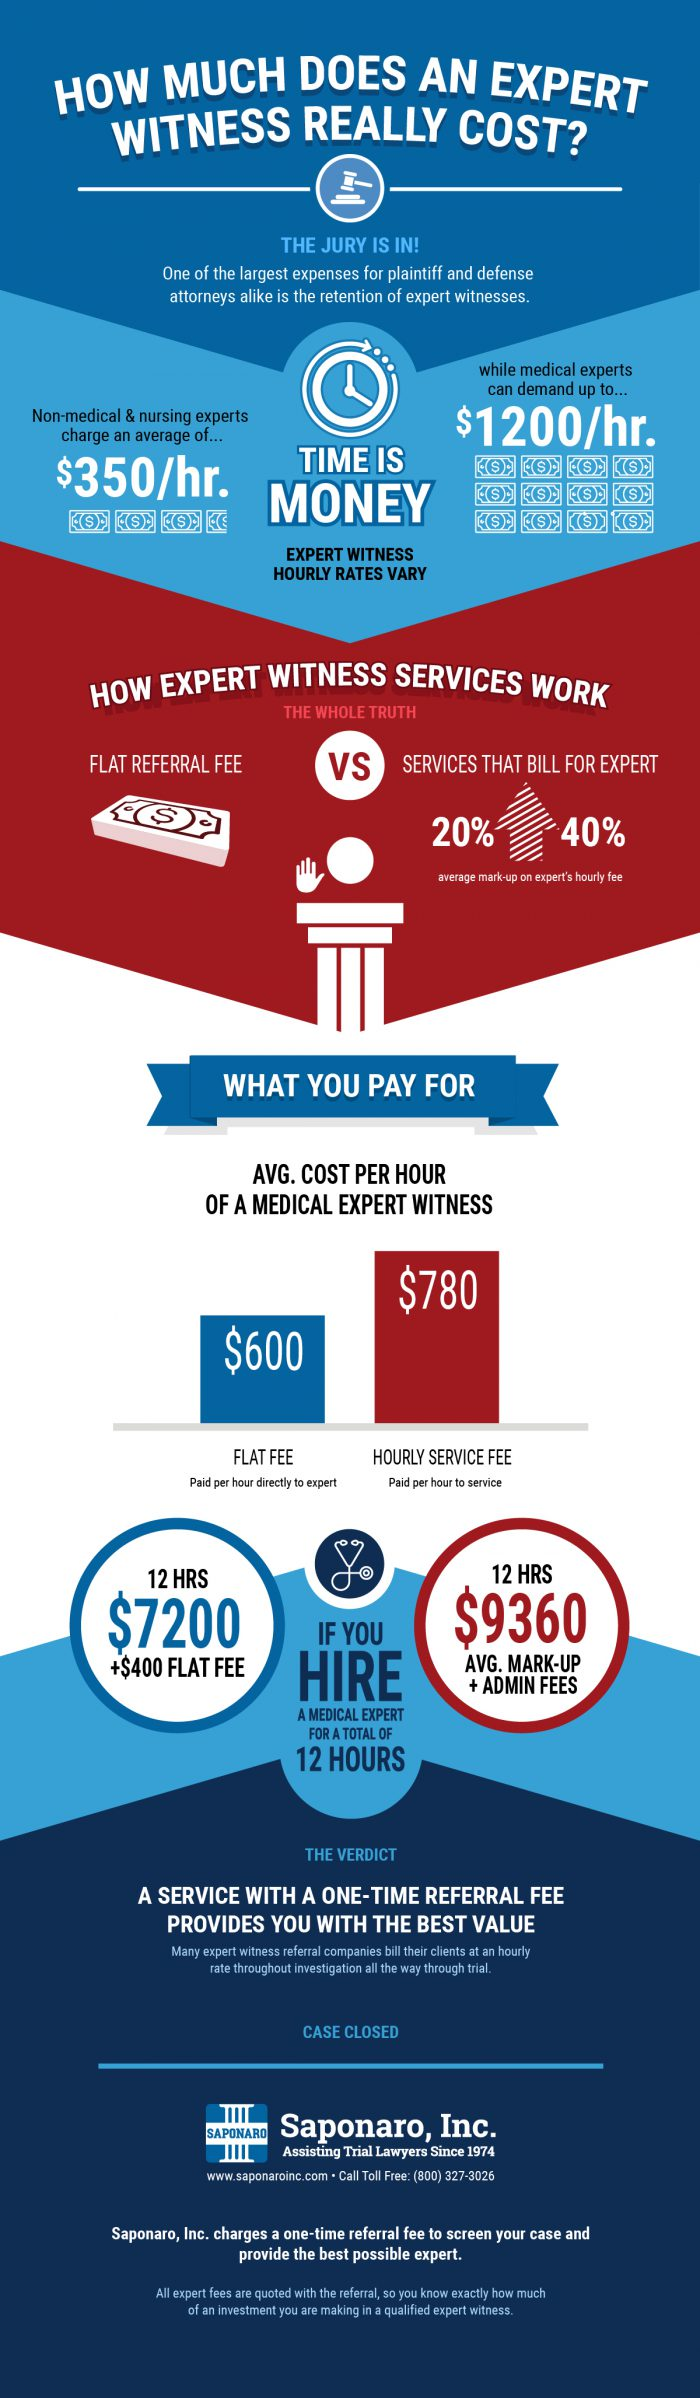 Expert Witness Fees [Infographic]